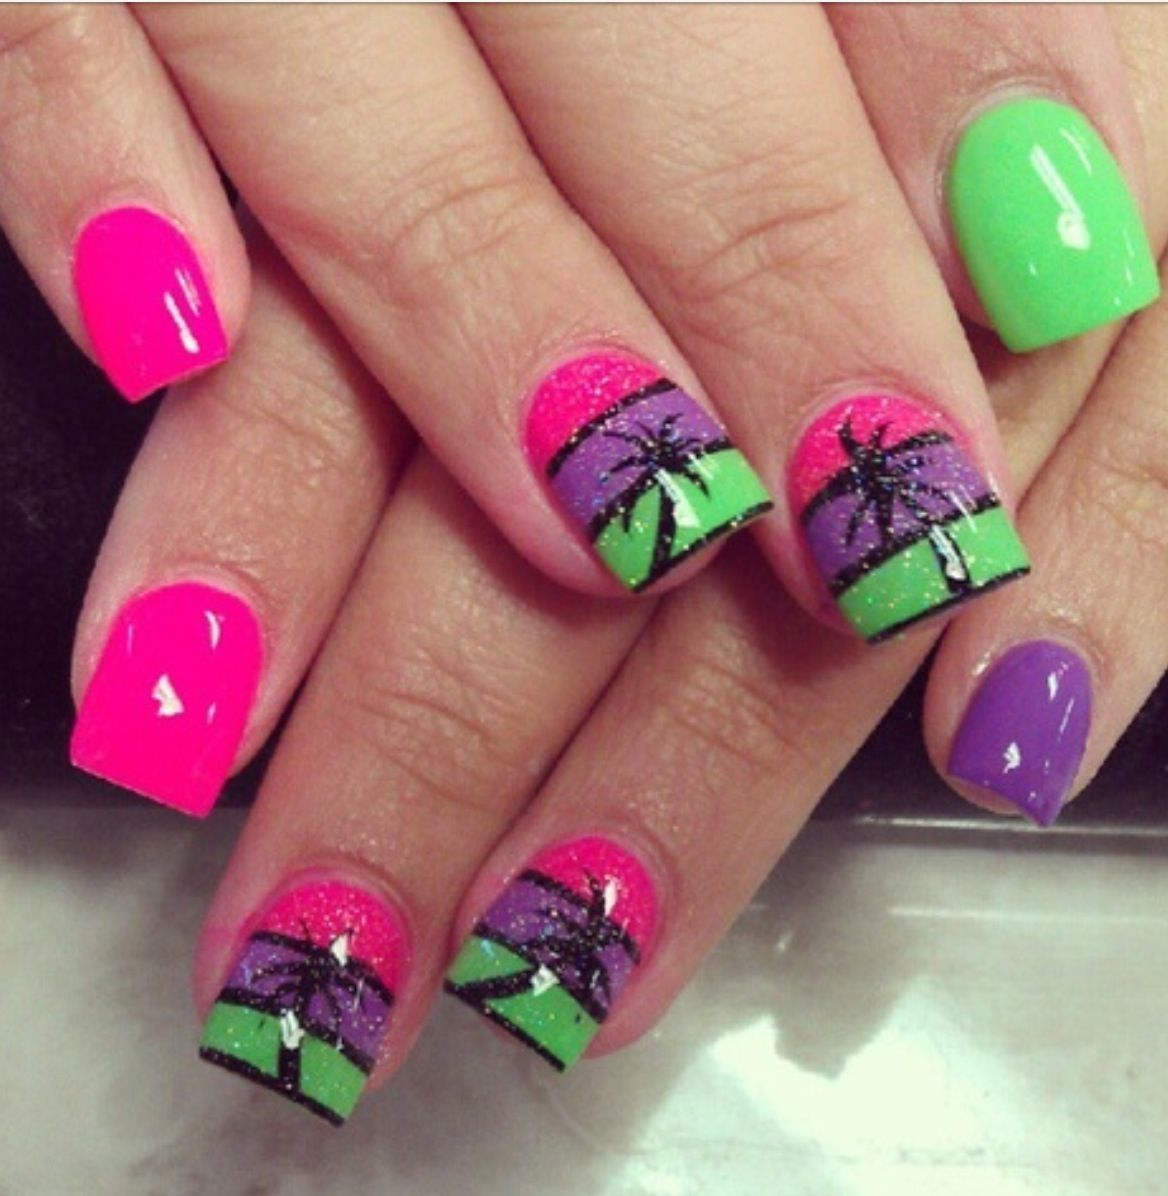 Summer nail art design ideas with palm tree   Nails   Pinterest ...